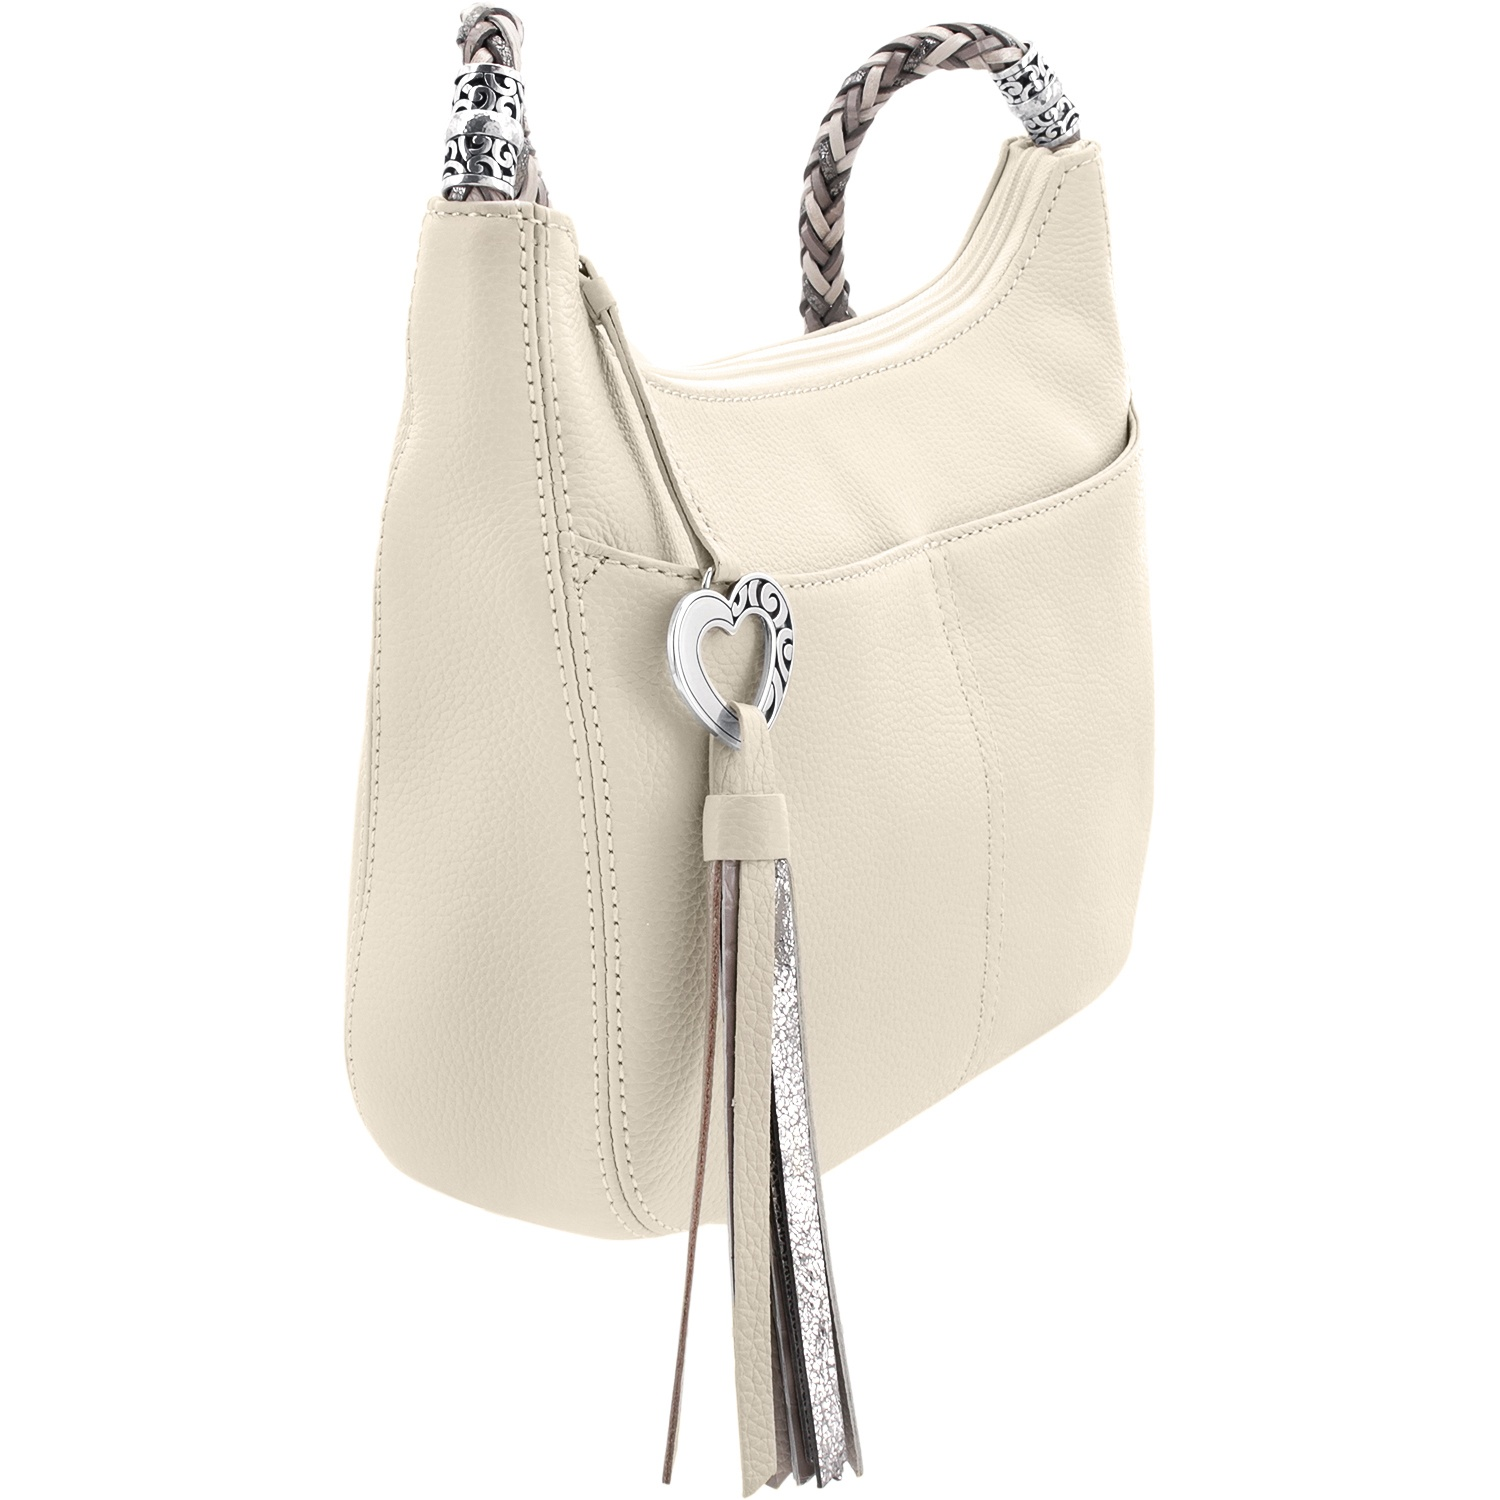 23d28fbb84 Barbados Baby Barbados Cross Body Hobo Crossbodies